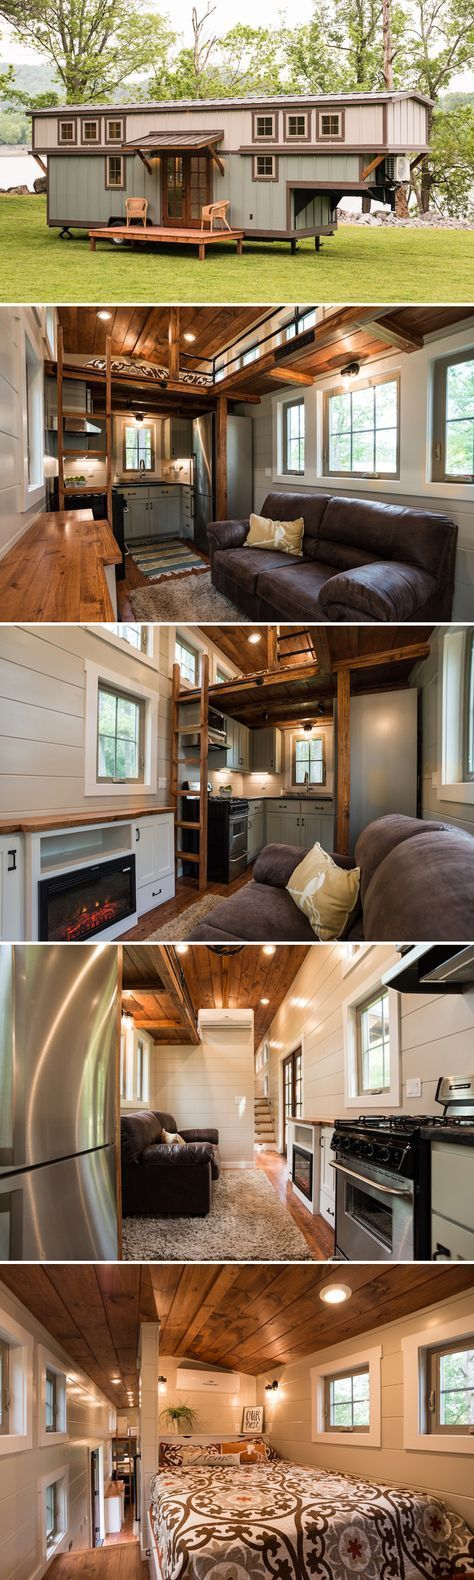 The Retreat is a luxurious 416-square-foot three bedroom gooseneck tiny house built by Timbercraft Tiny Homes in Guntersville, Alabama.